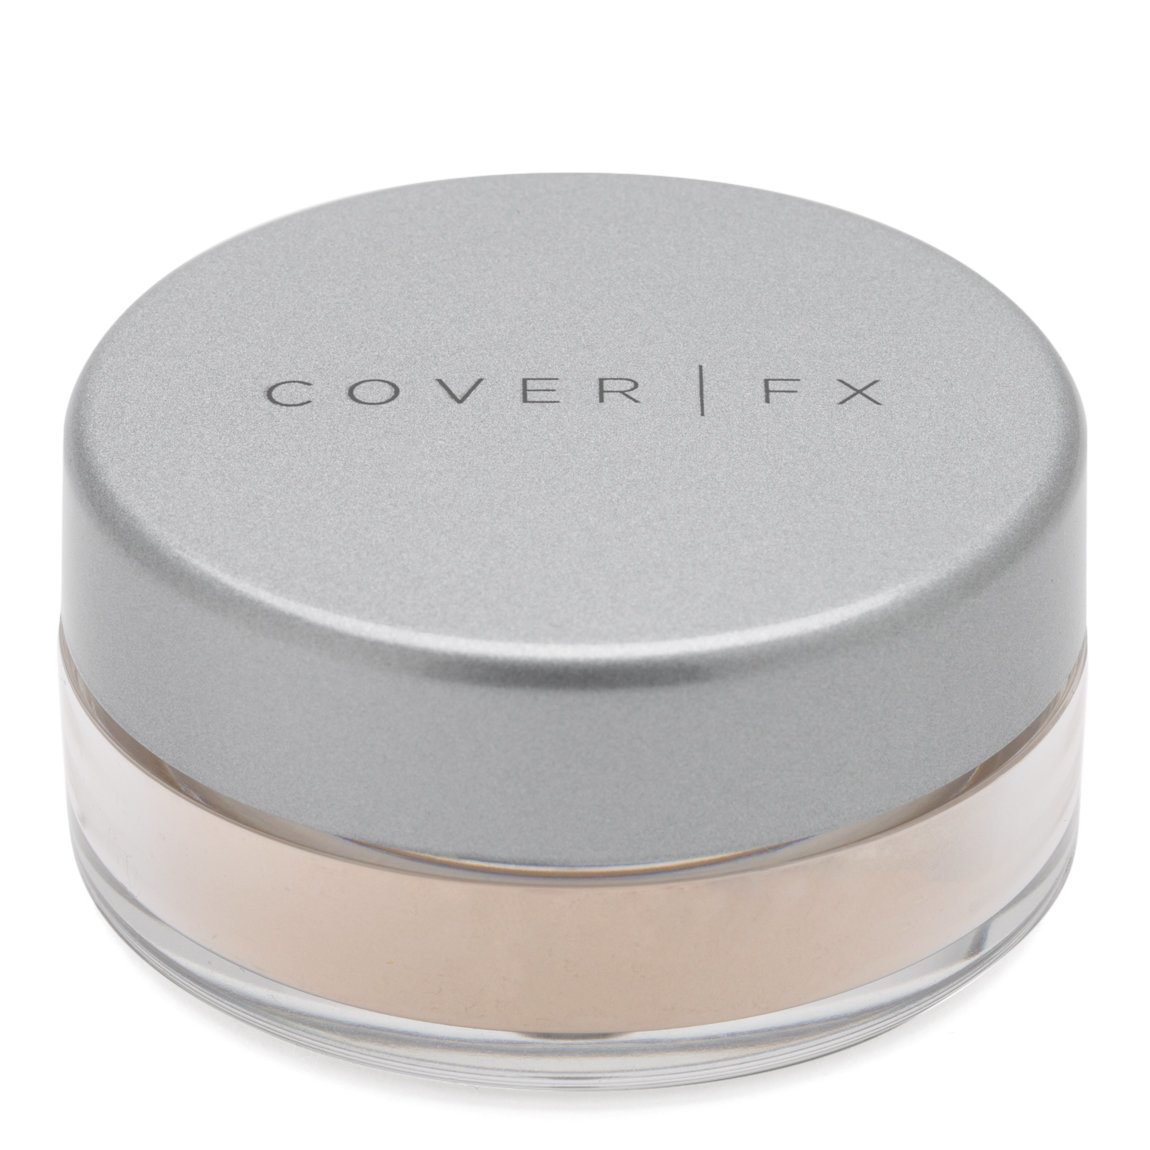 COVER | FX Perfect Setting Powder - Travel Size Light alternative view 1.